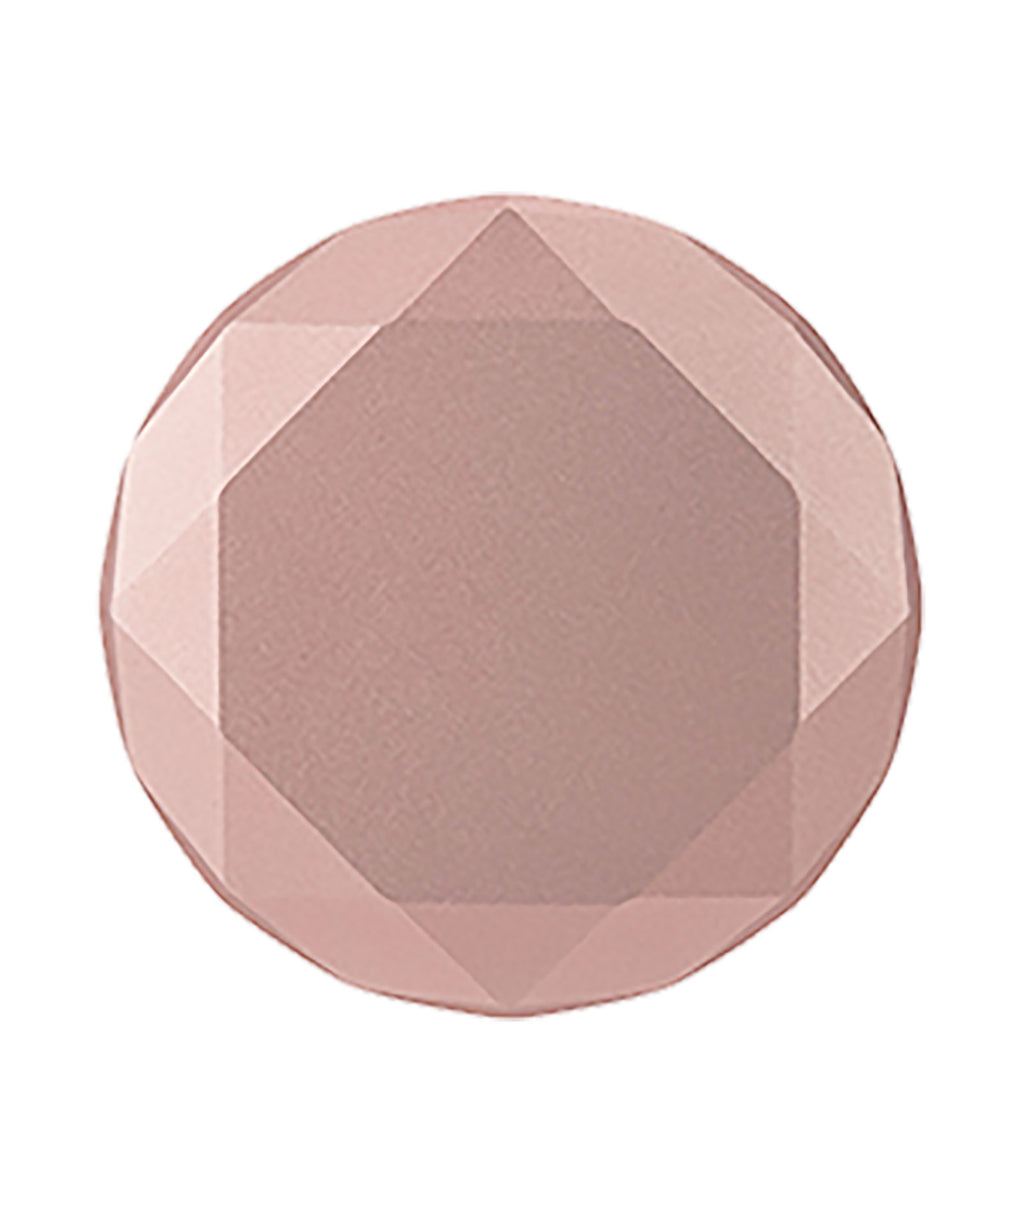 PopSockets Rose Diamond